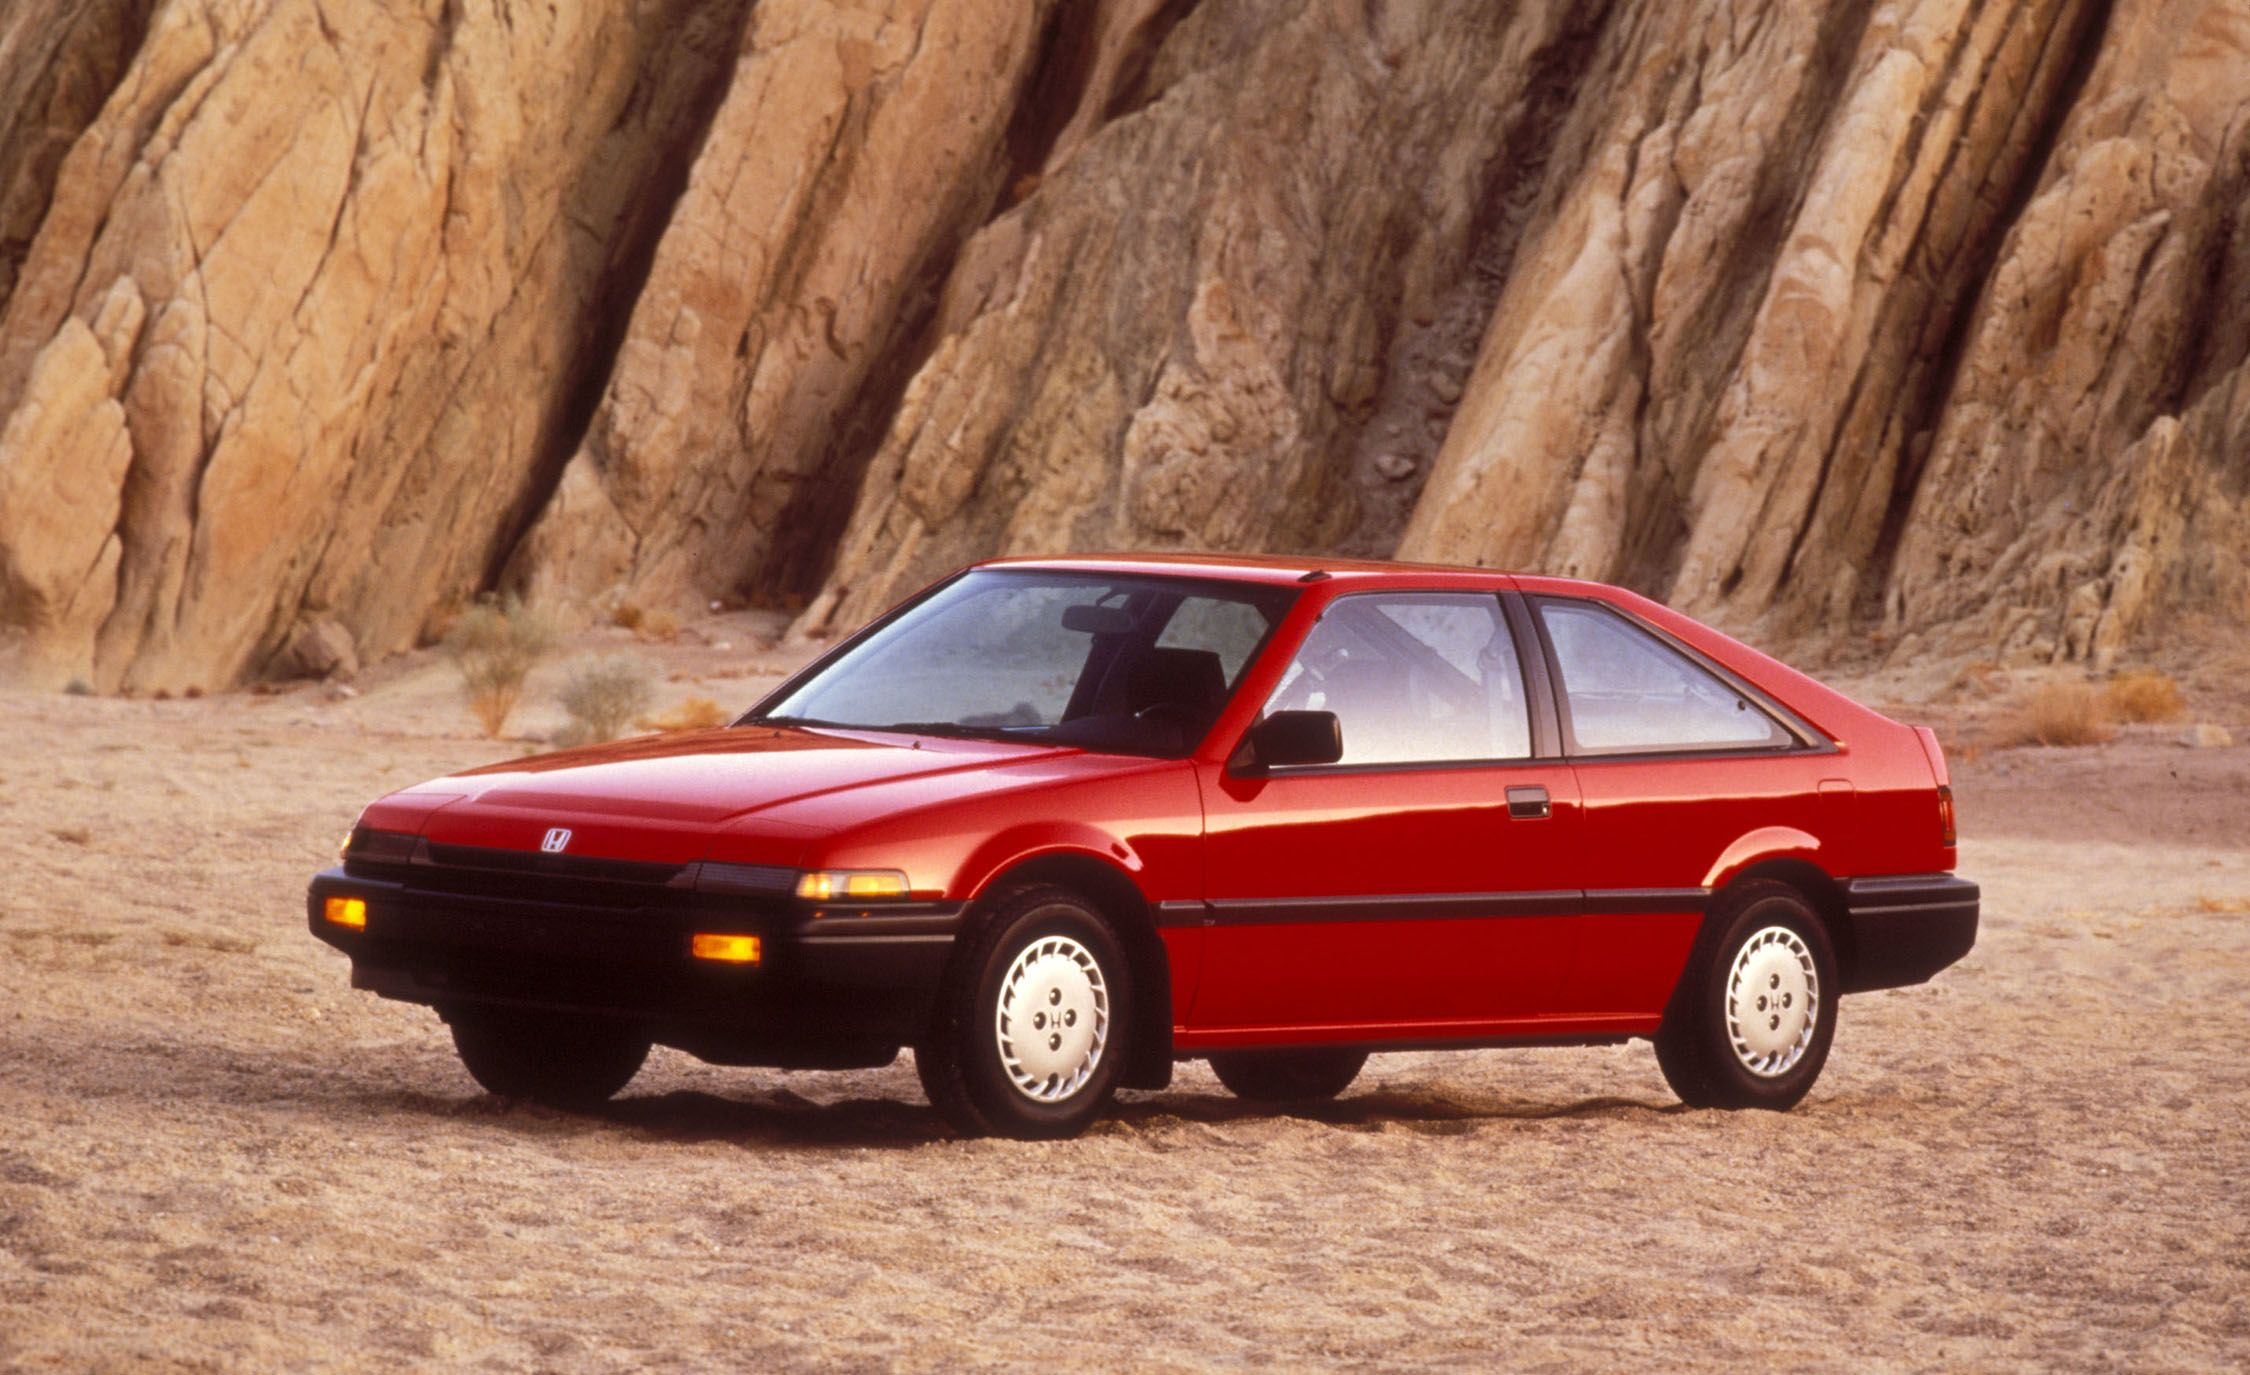 Honda Accord A Visual History Of The S House Since Its Birth In 1976